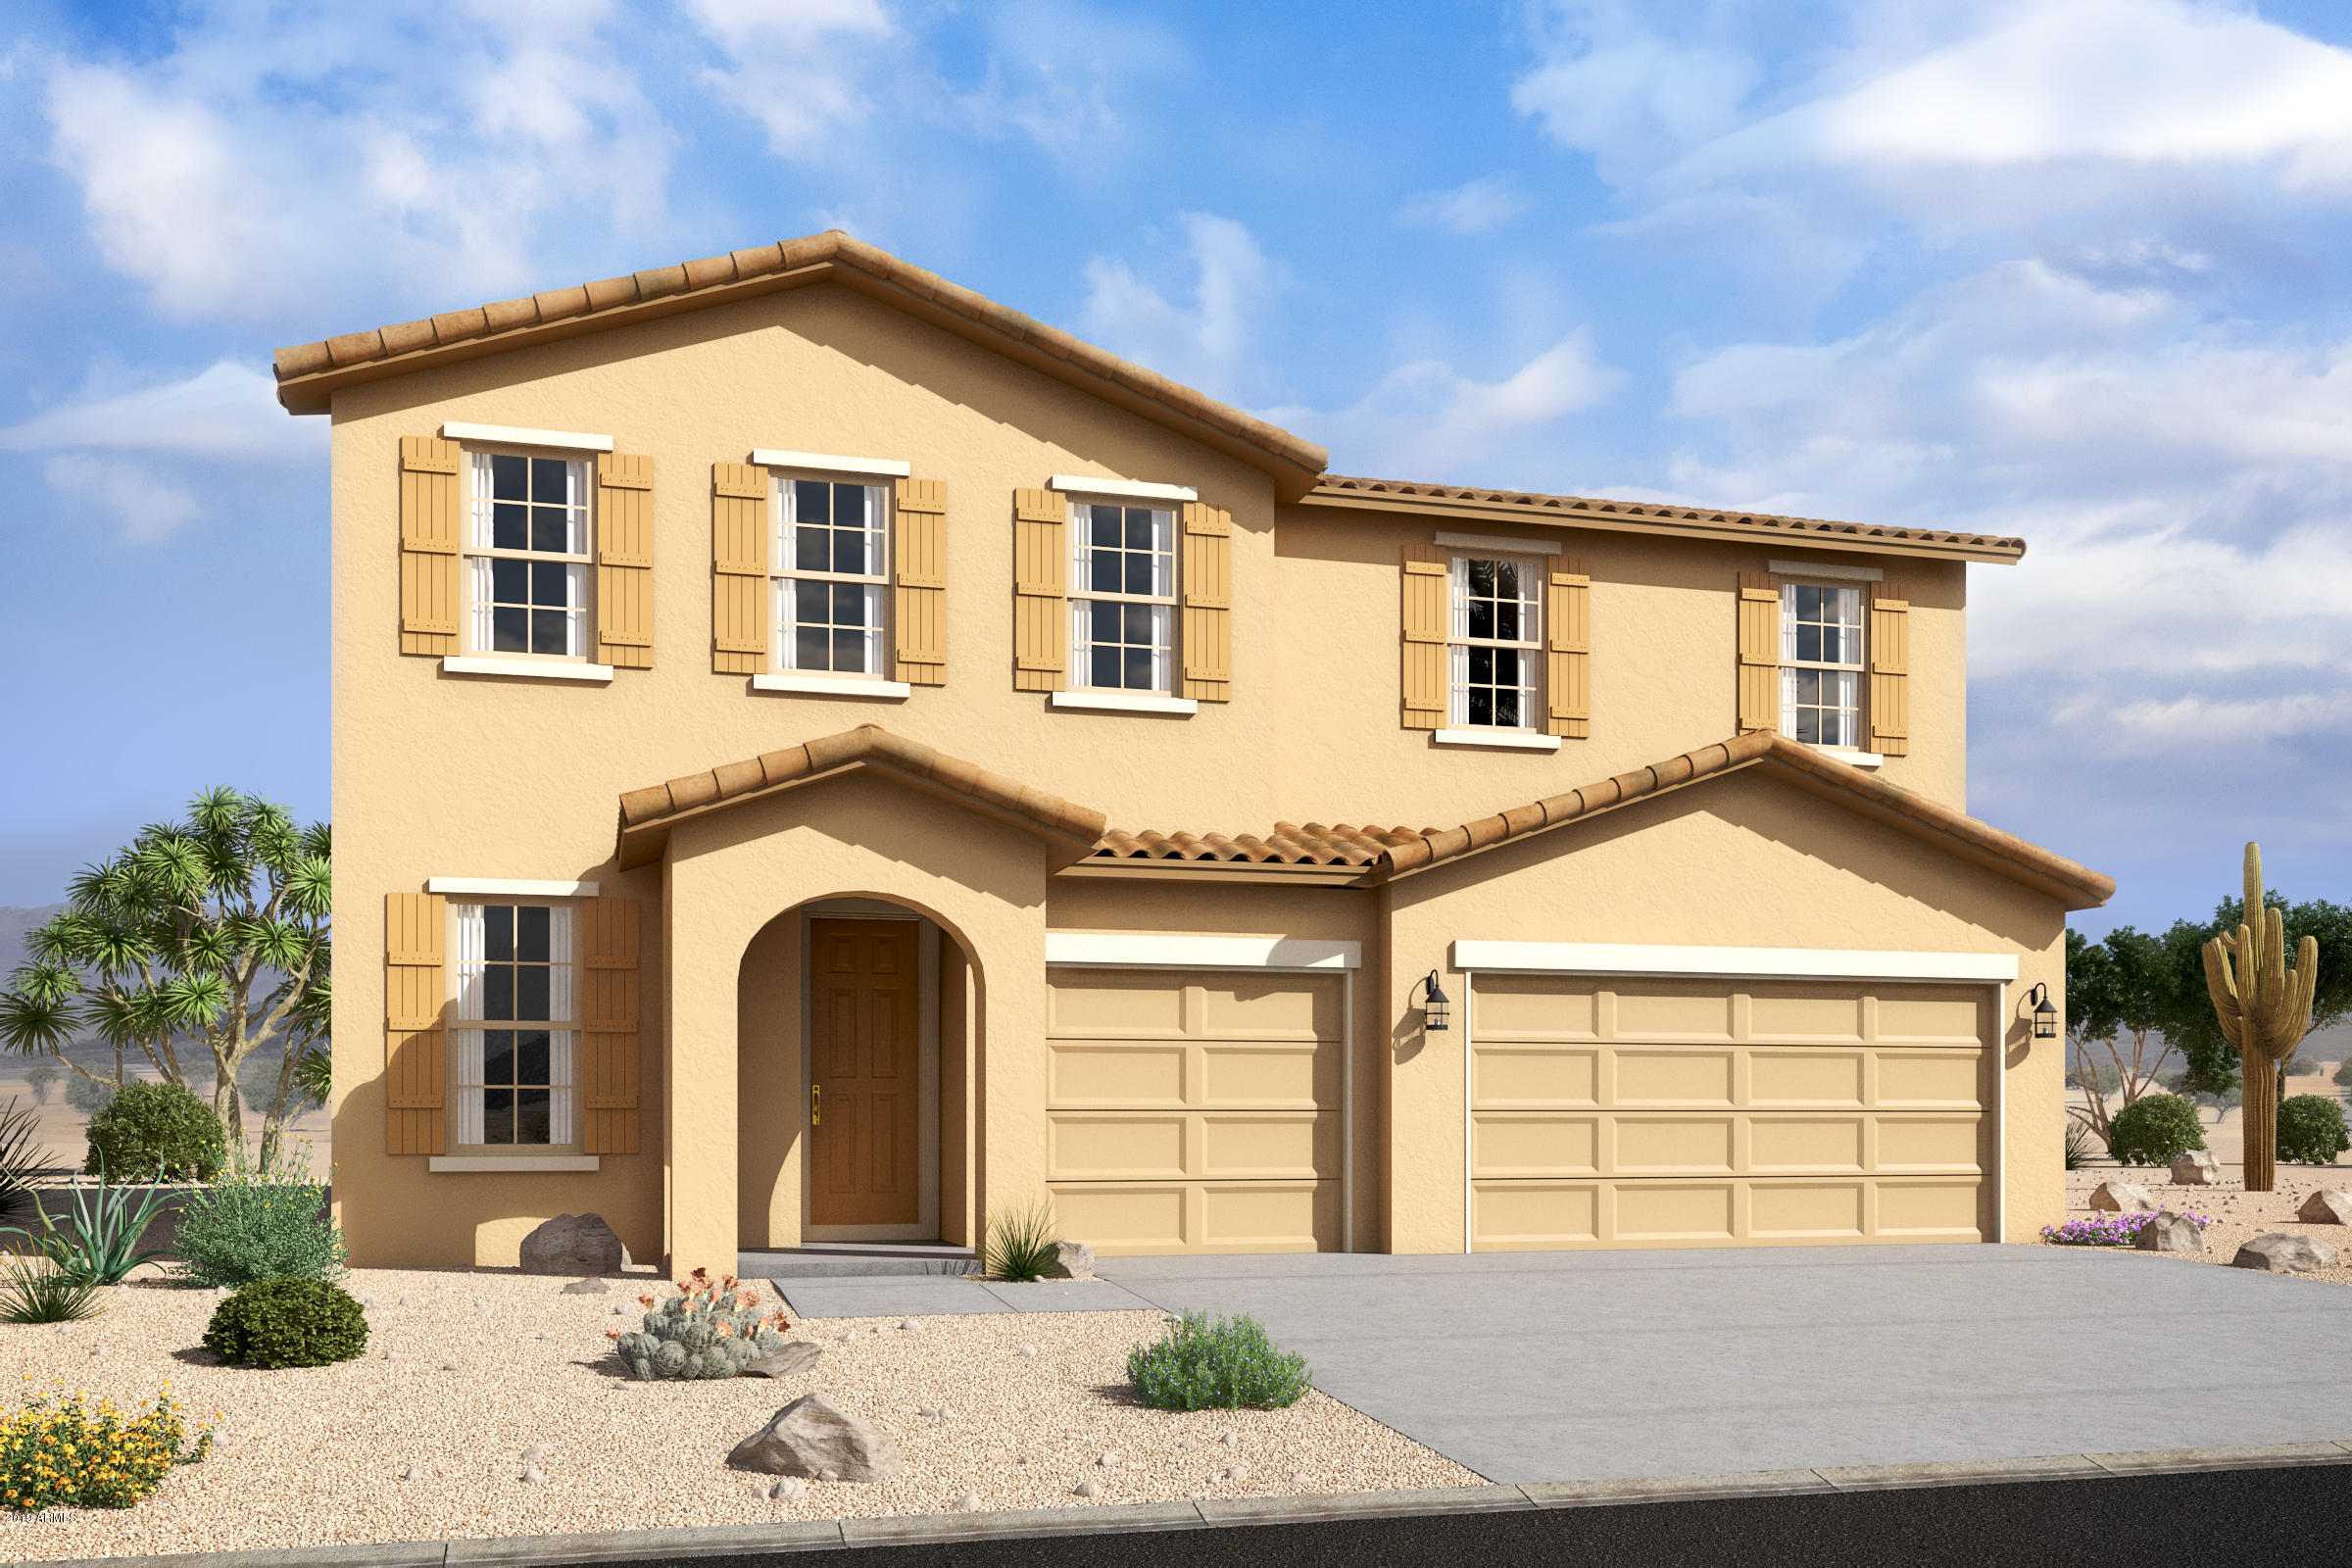 San Tan Valley Arizona 4 Bedroom Single Family Homes For Sale By